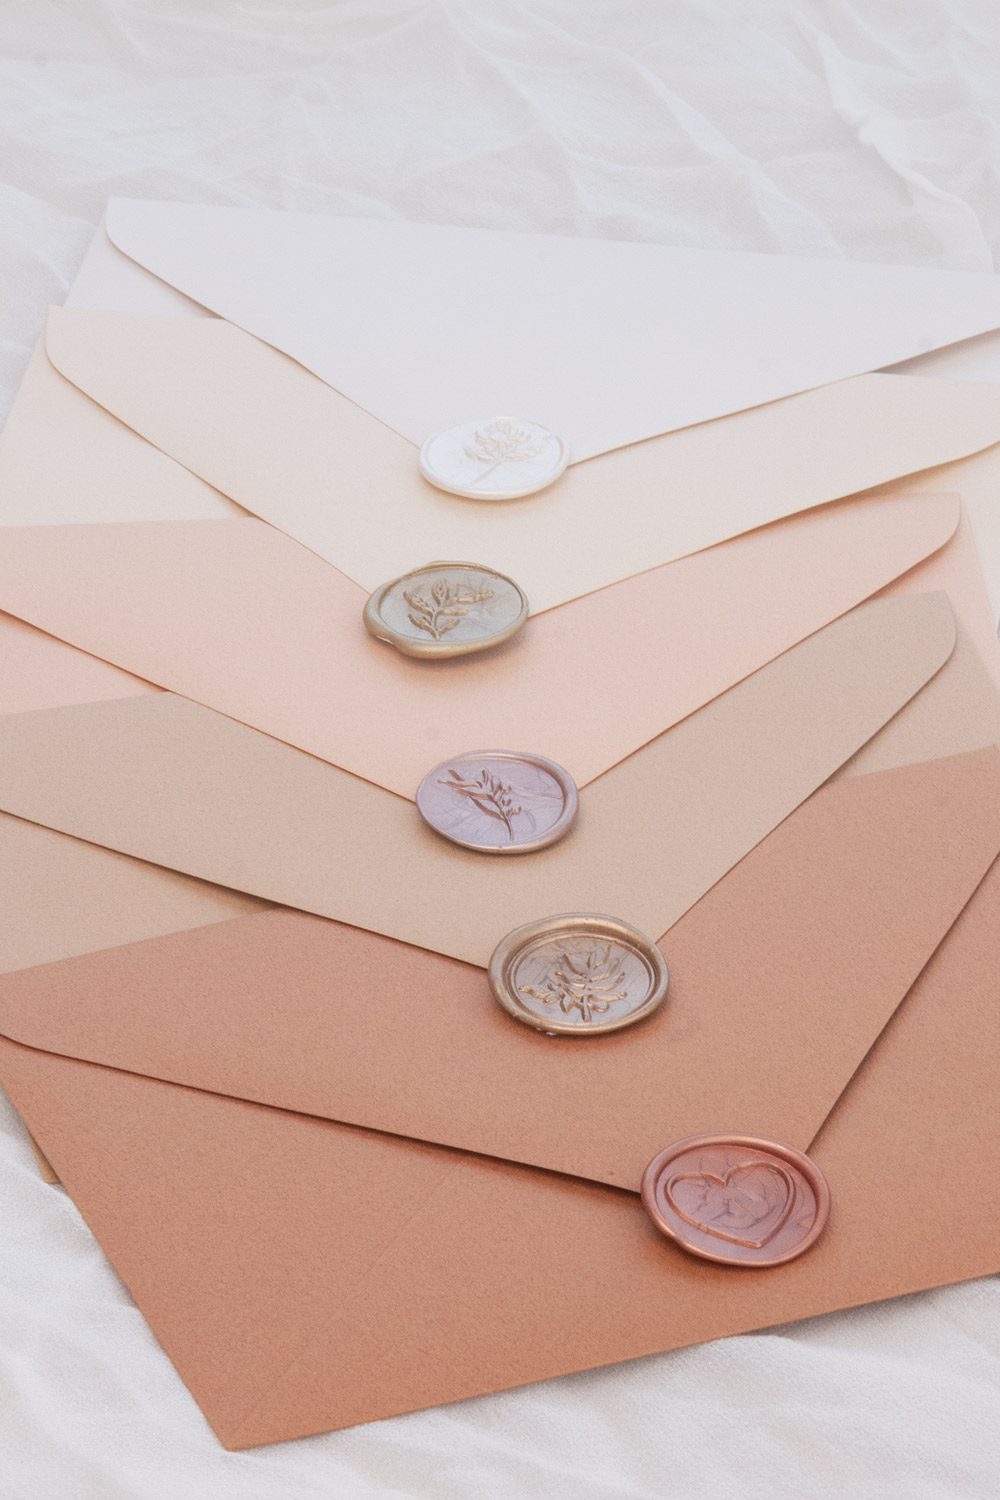 Envelopes with wax seals